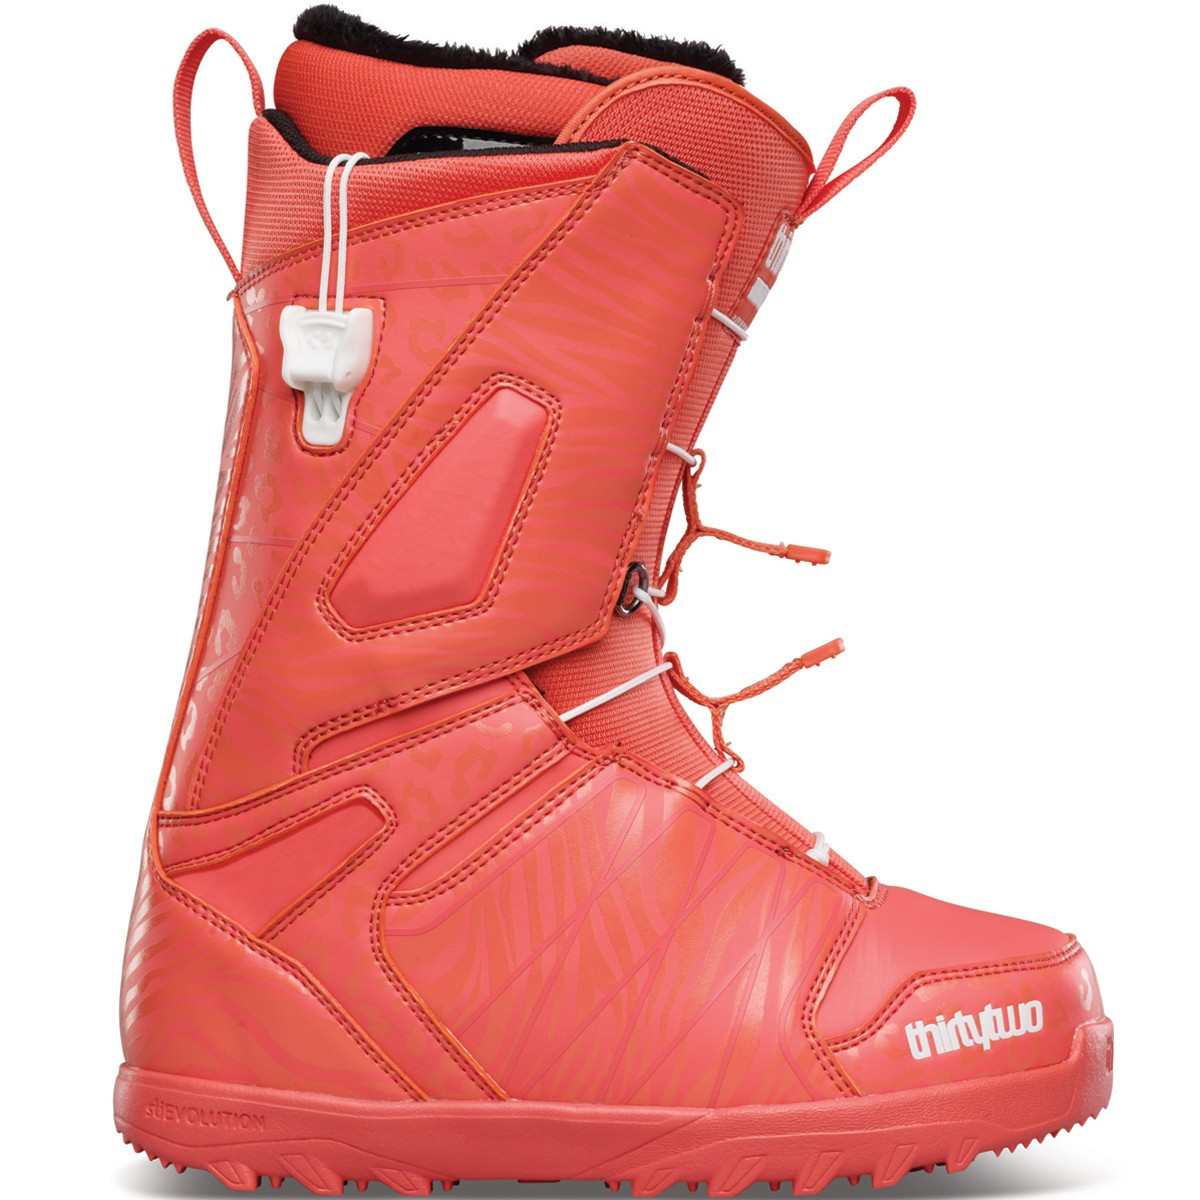 Thirtytwo Lashed FT Women's Boots 2015 - Coral